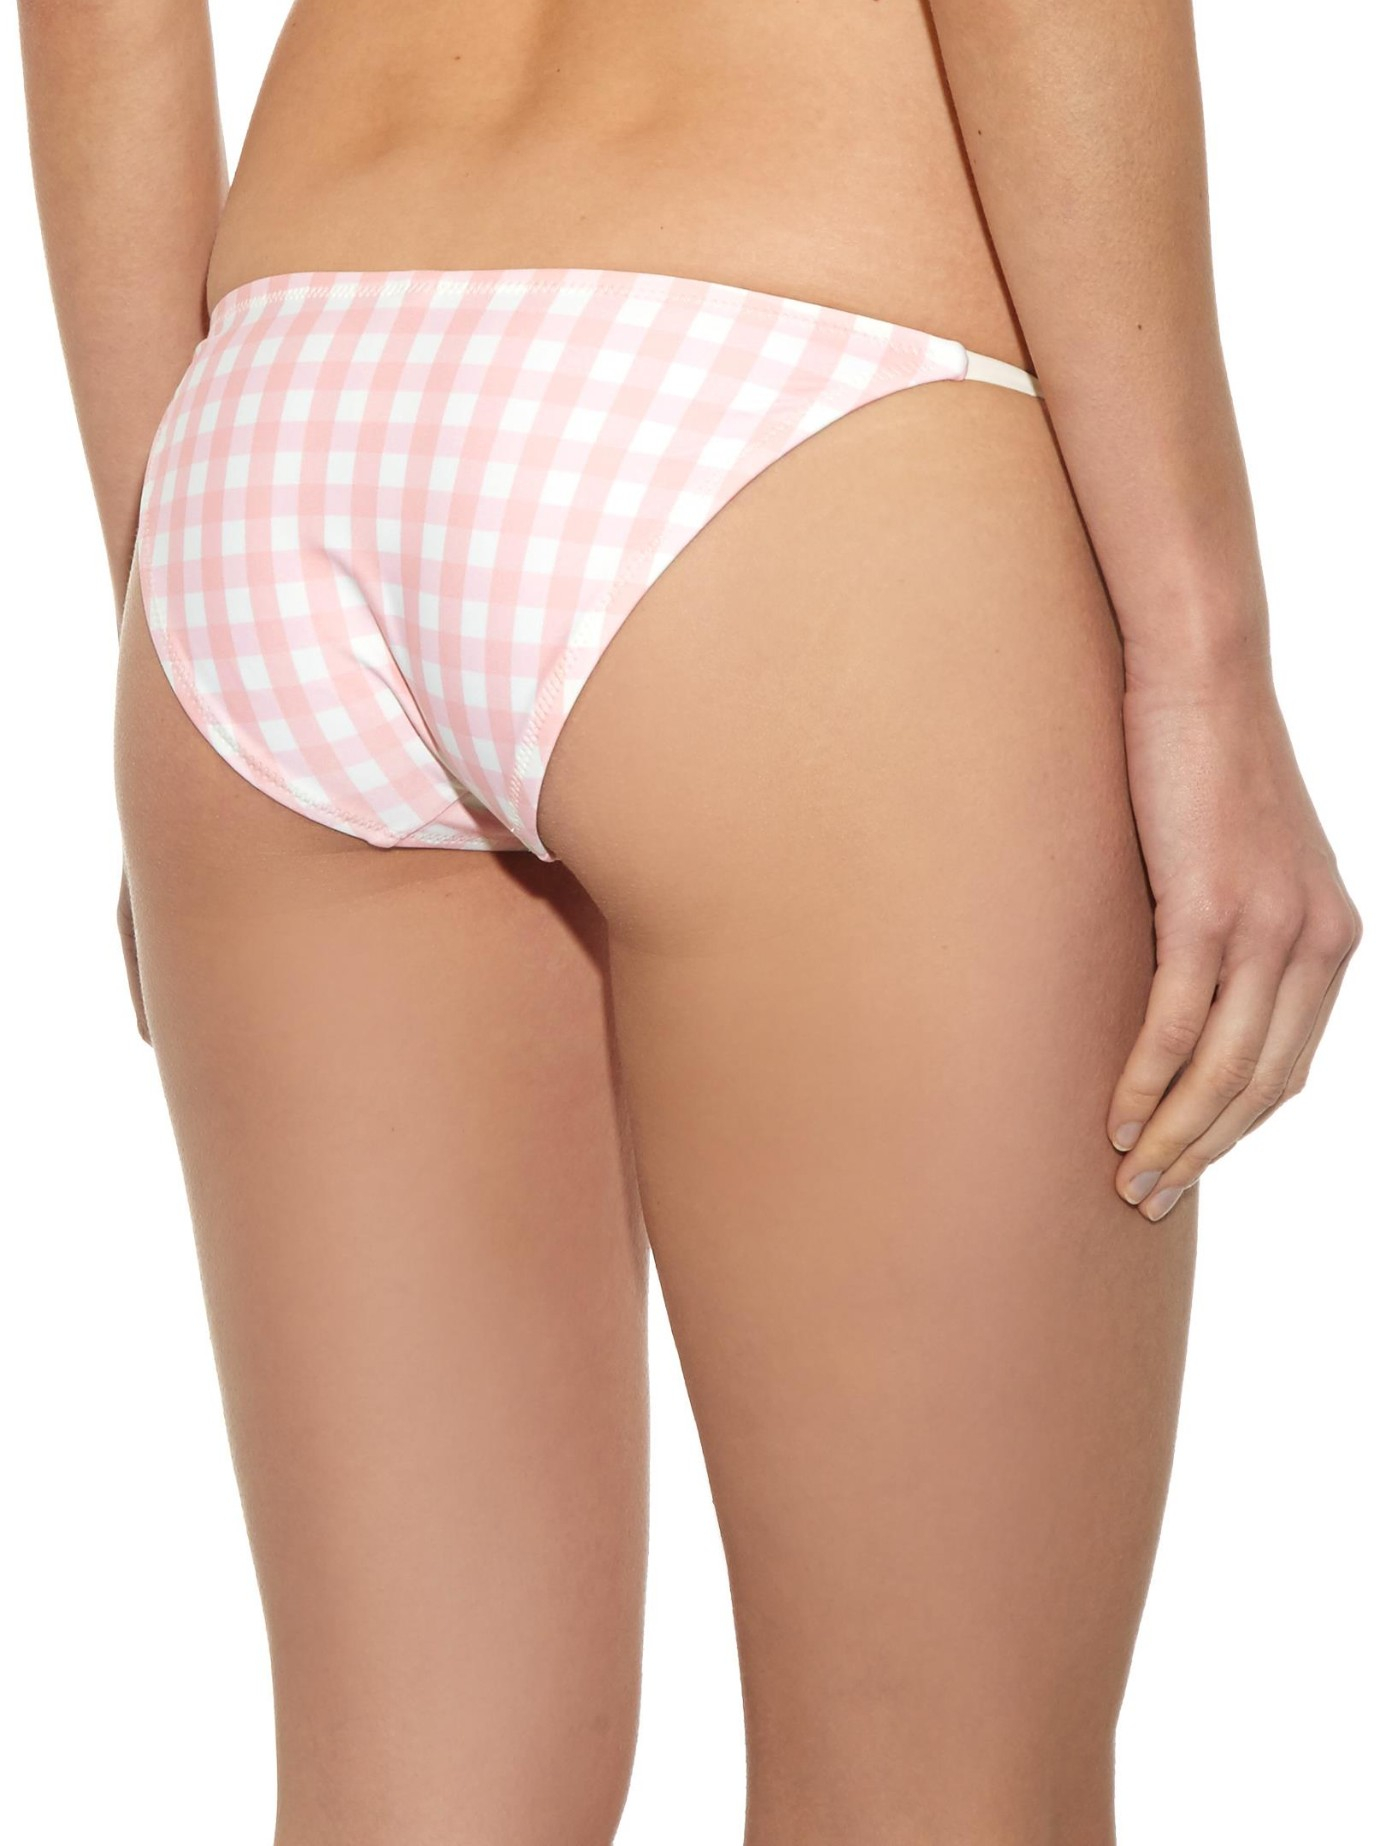 Solid & striped The Sophie Gingham Bikini Top in Pink